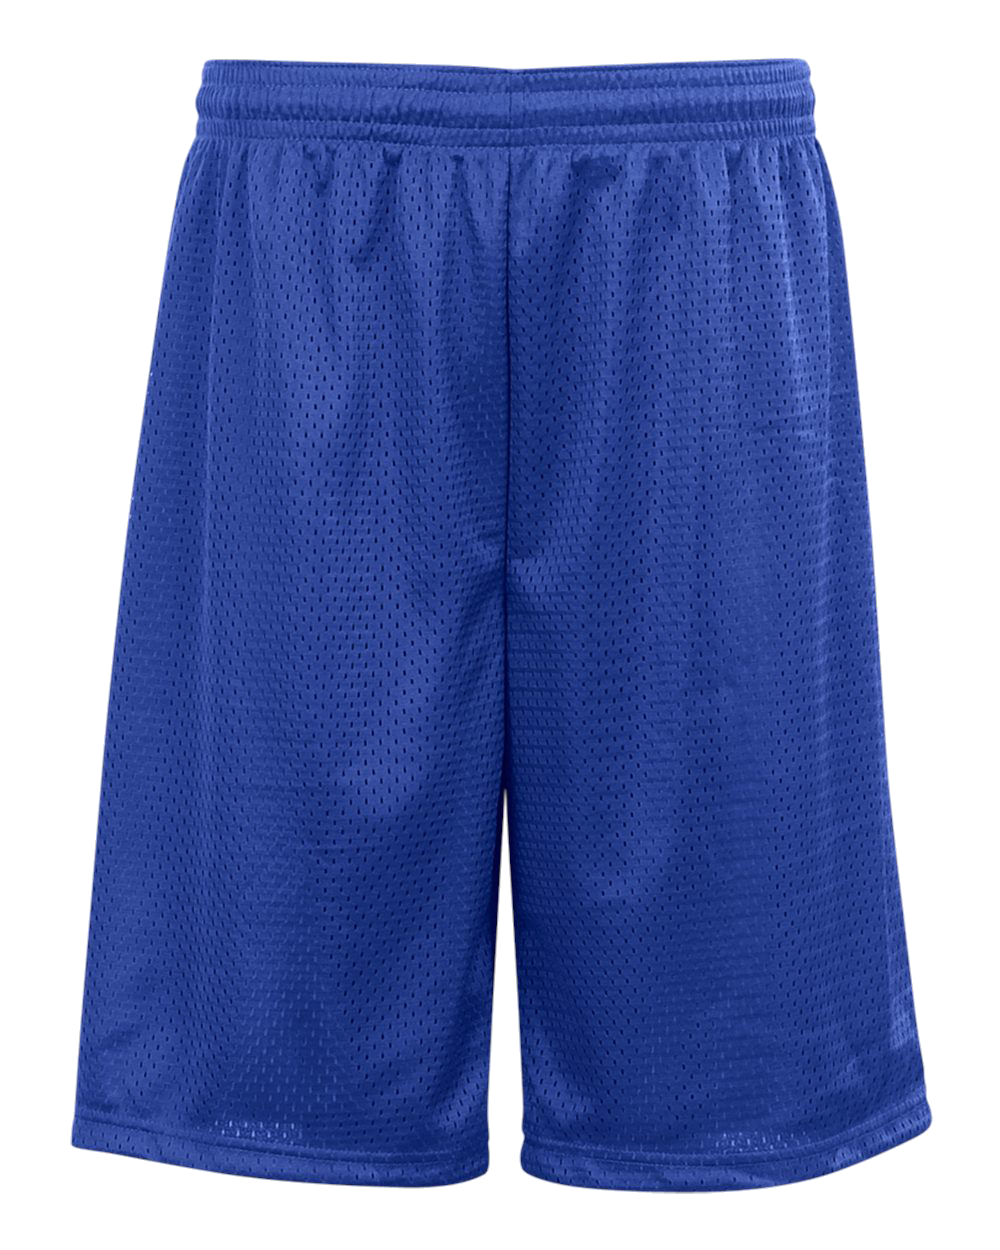 Mesh/Tricot 11 Inch Short - Royal